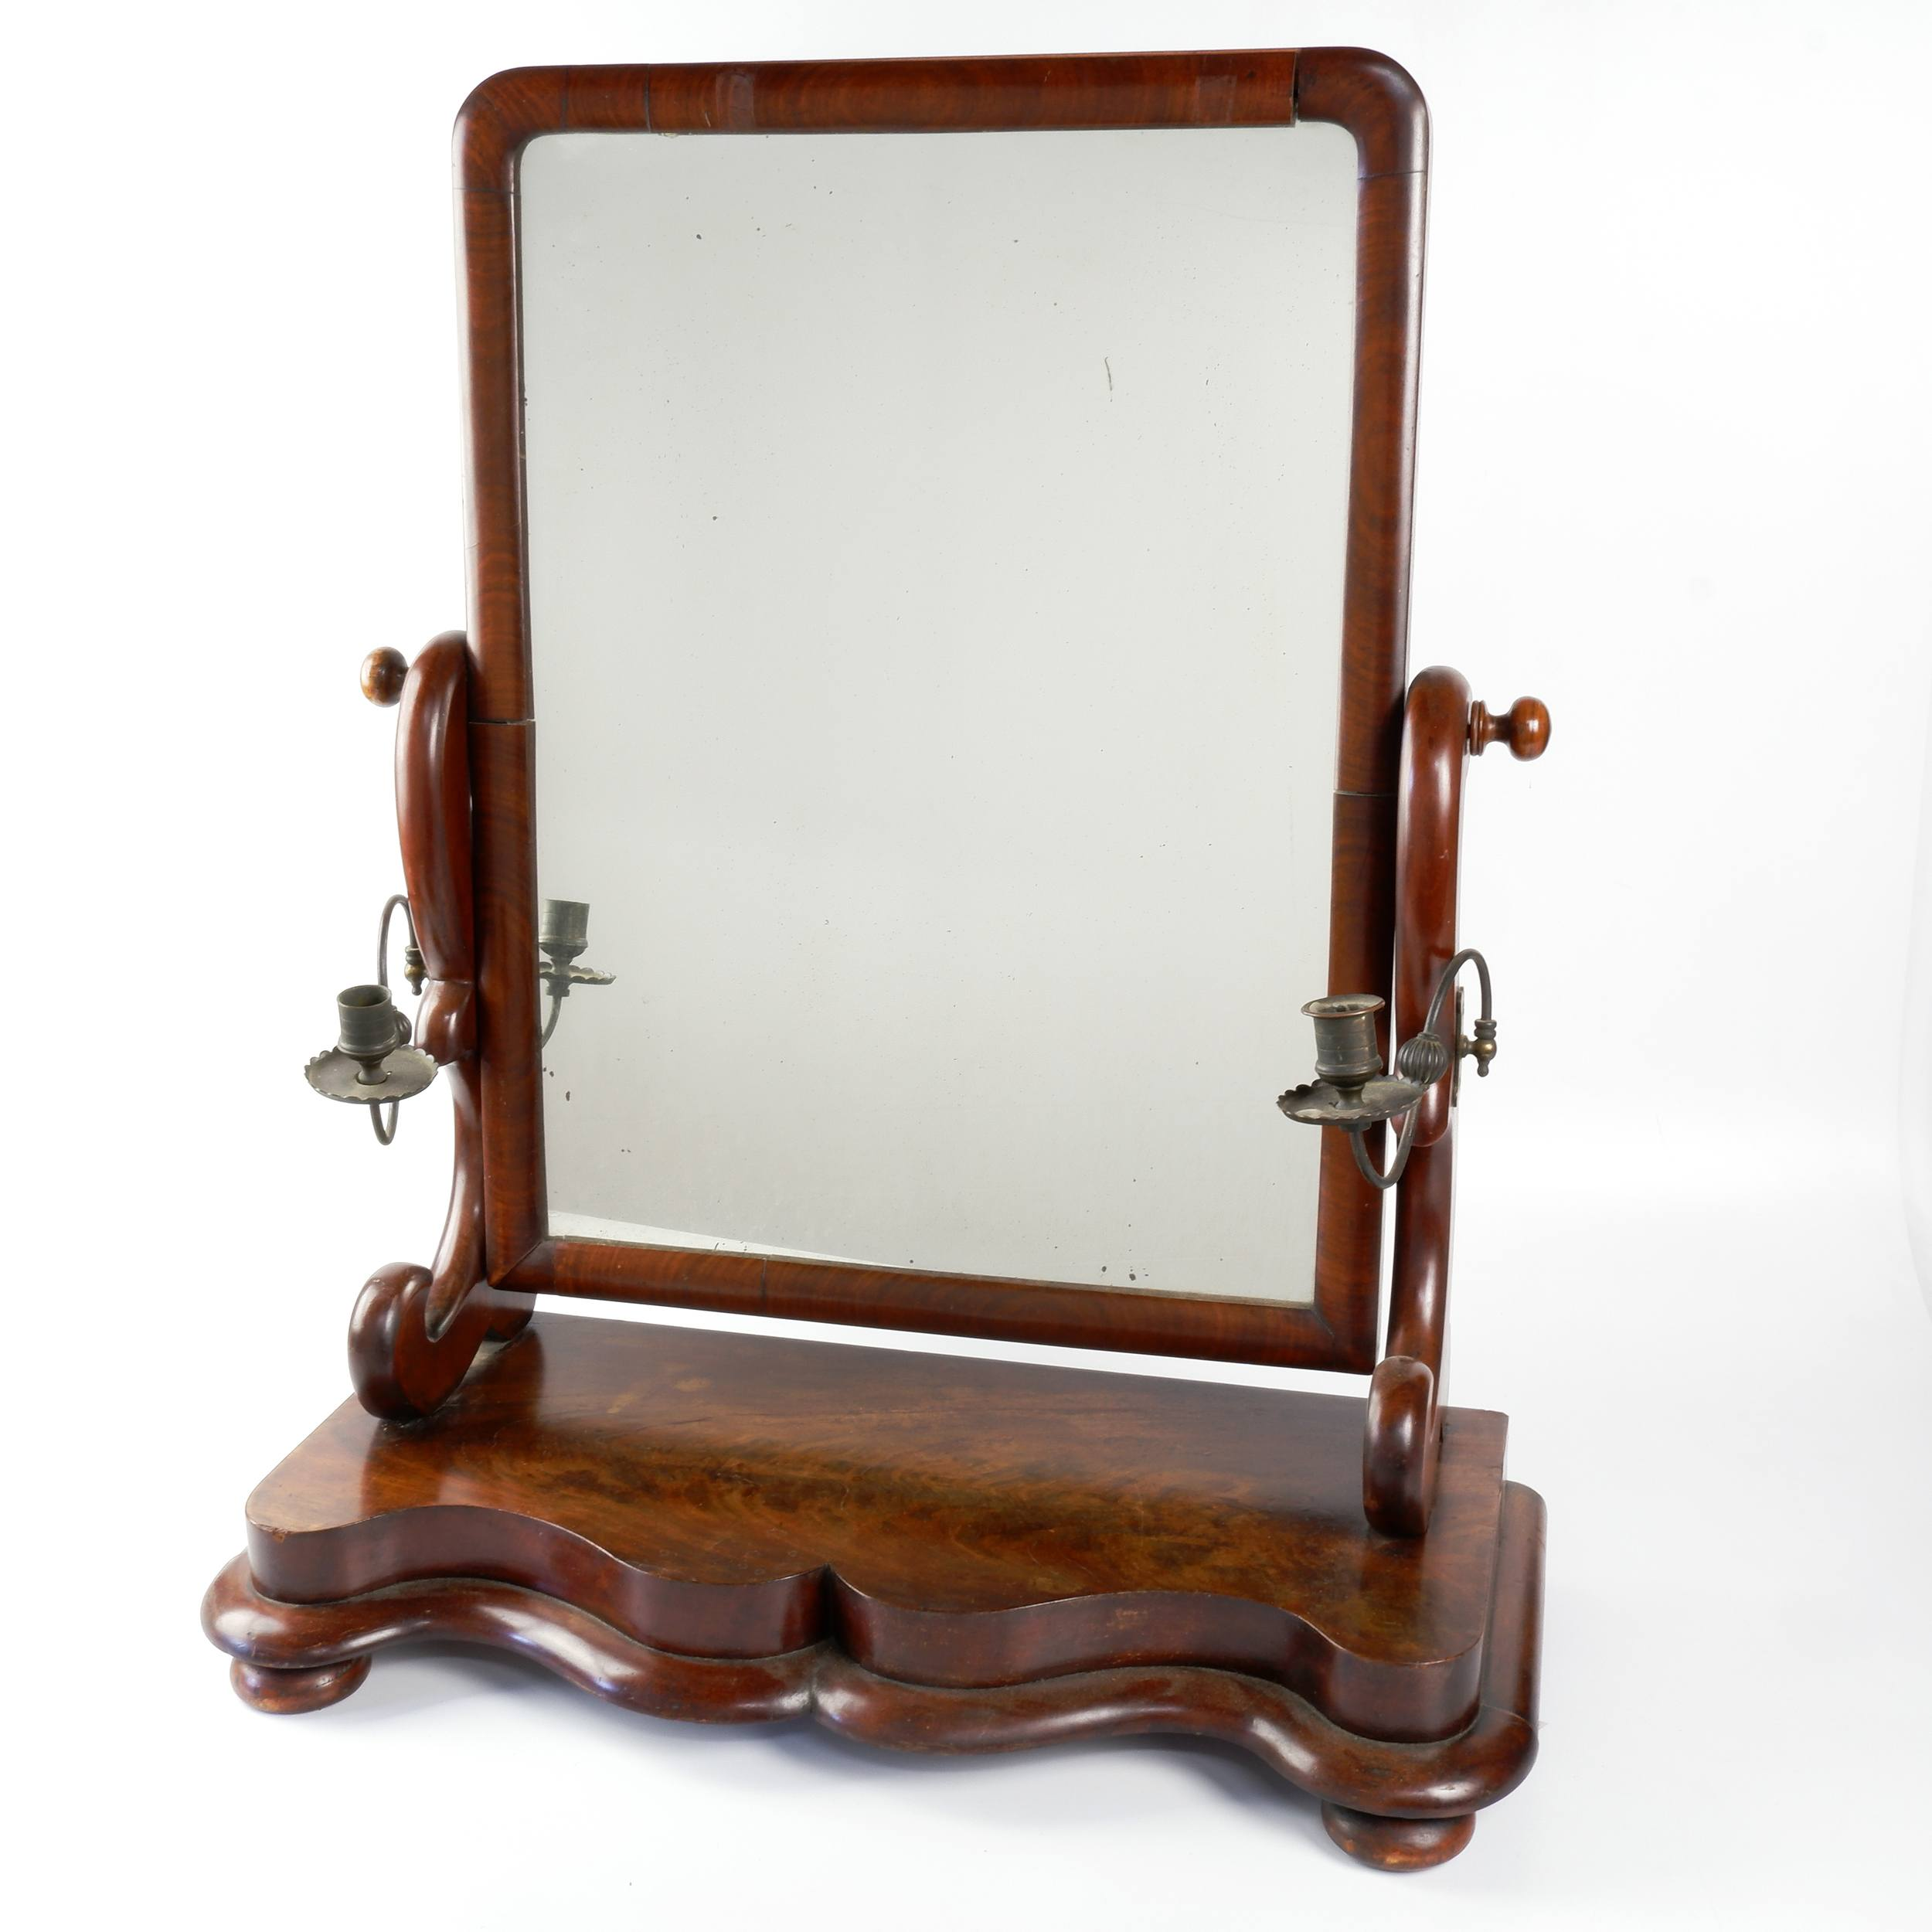 'Victorian Mahogany Toilet Mirror with Attached Candle Sconces Circa 1880'